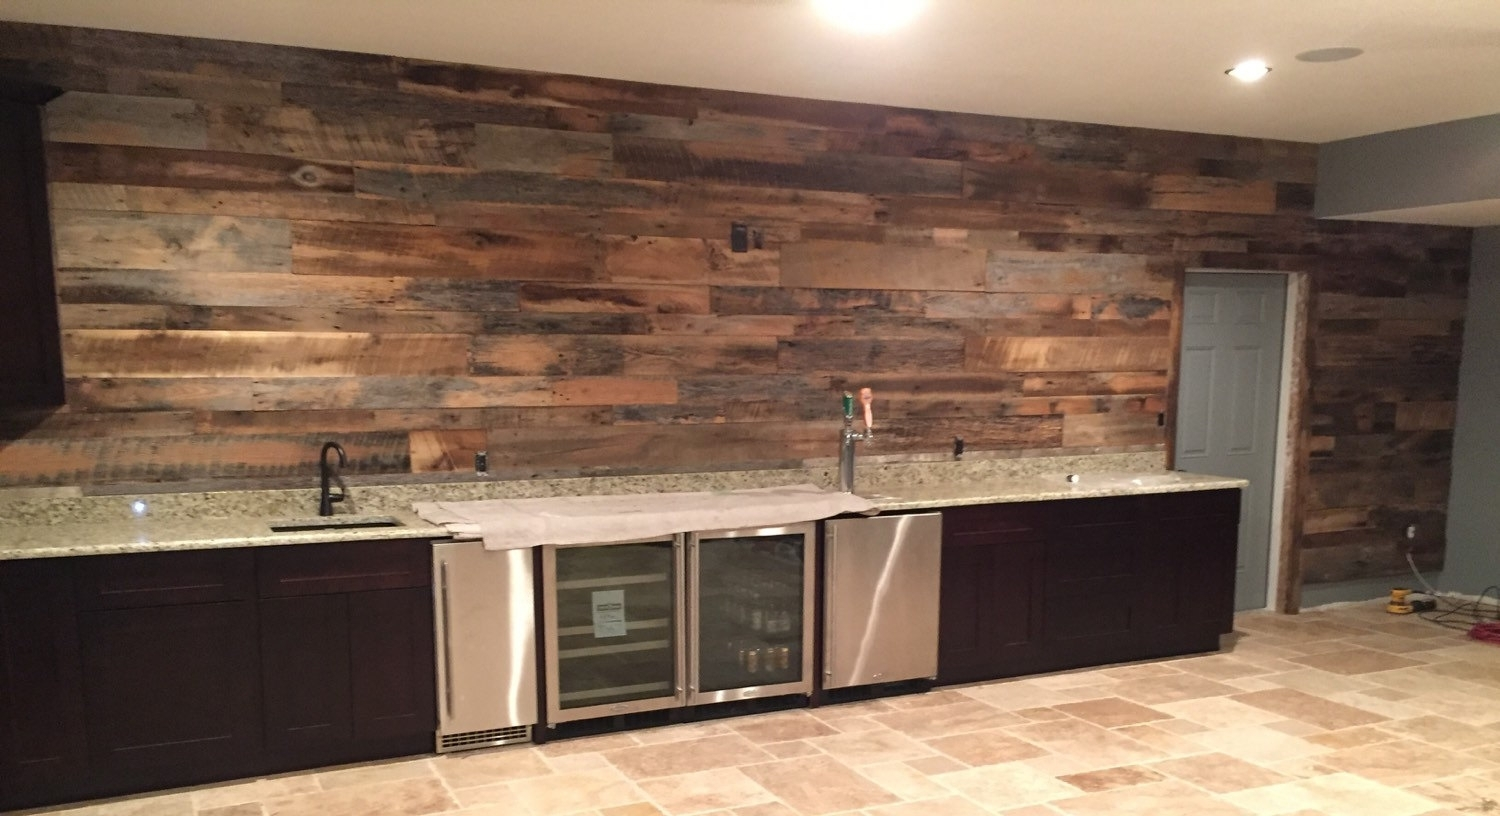 Reclaimed Wood Accent Wall — Cookwithalocal Home And Space Decor With Latest Reclaimed Wood Wall Accents (View 9 of 15)